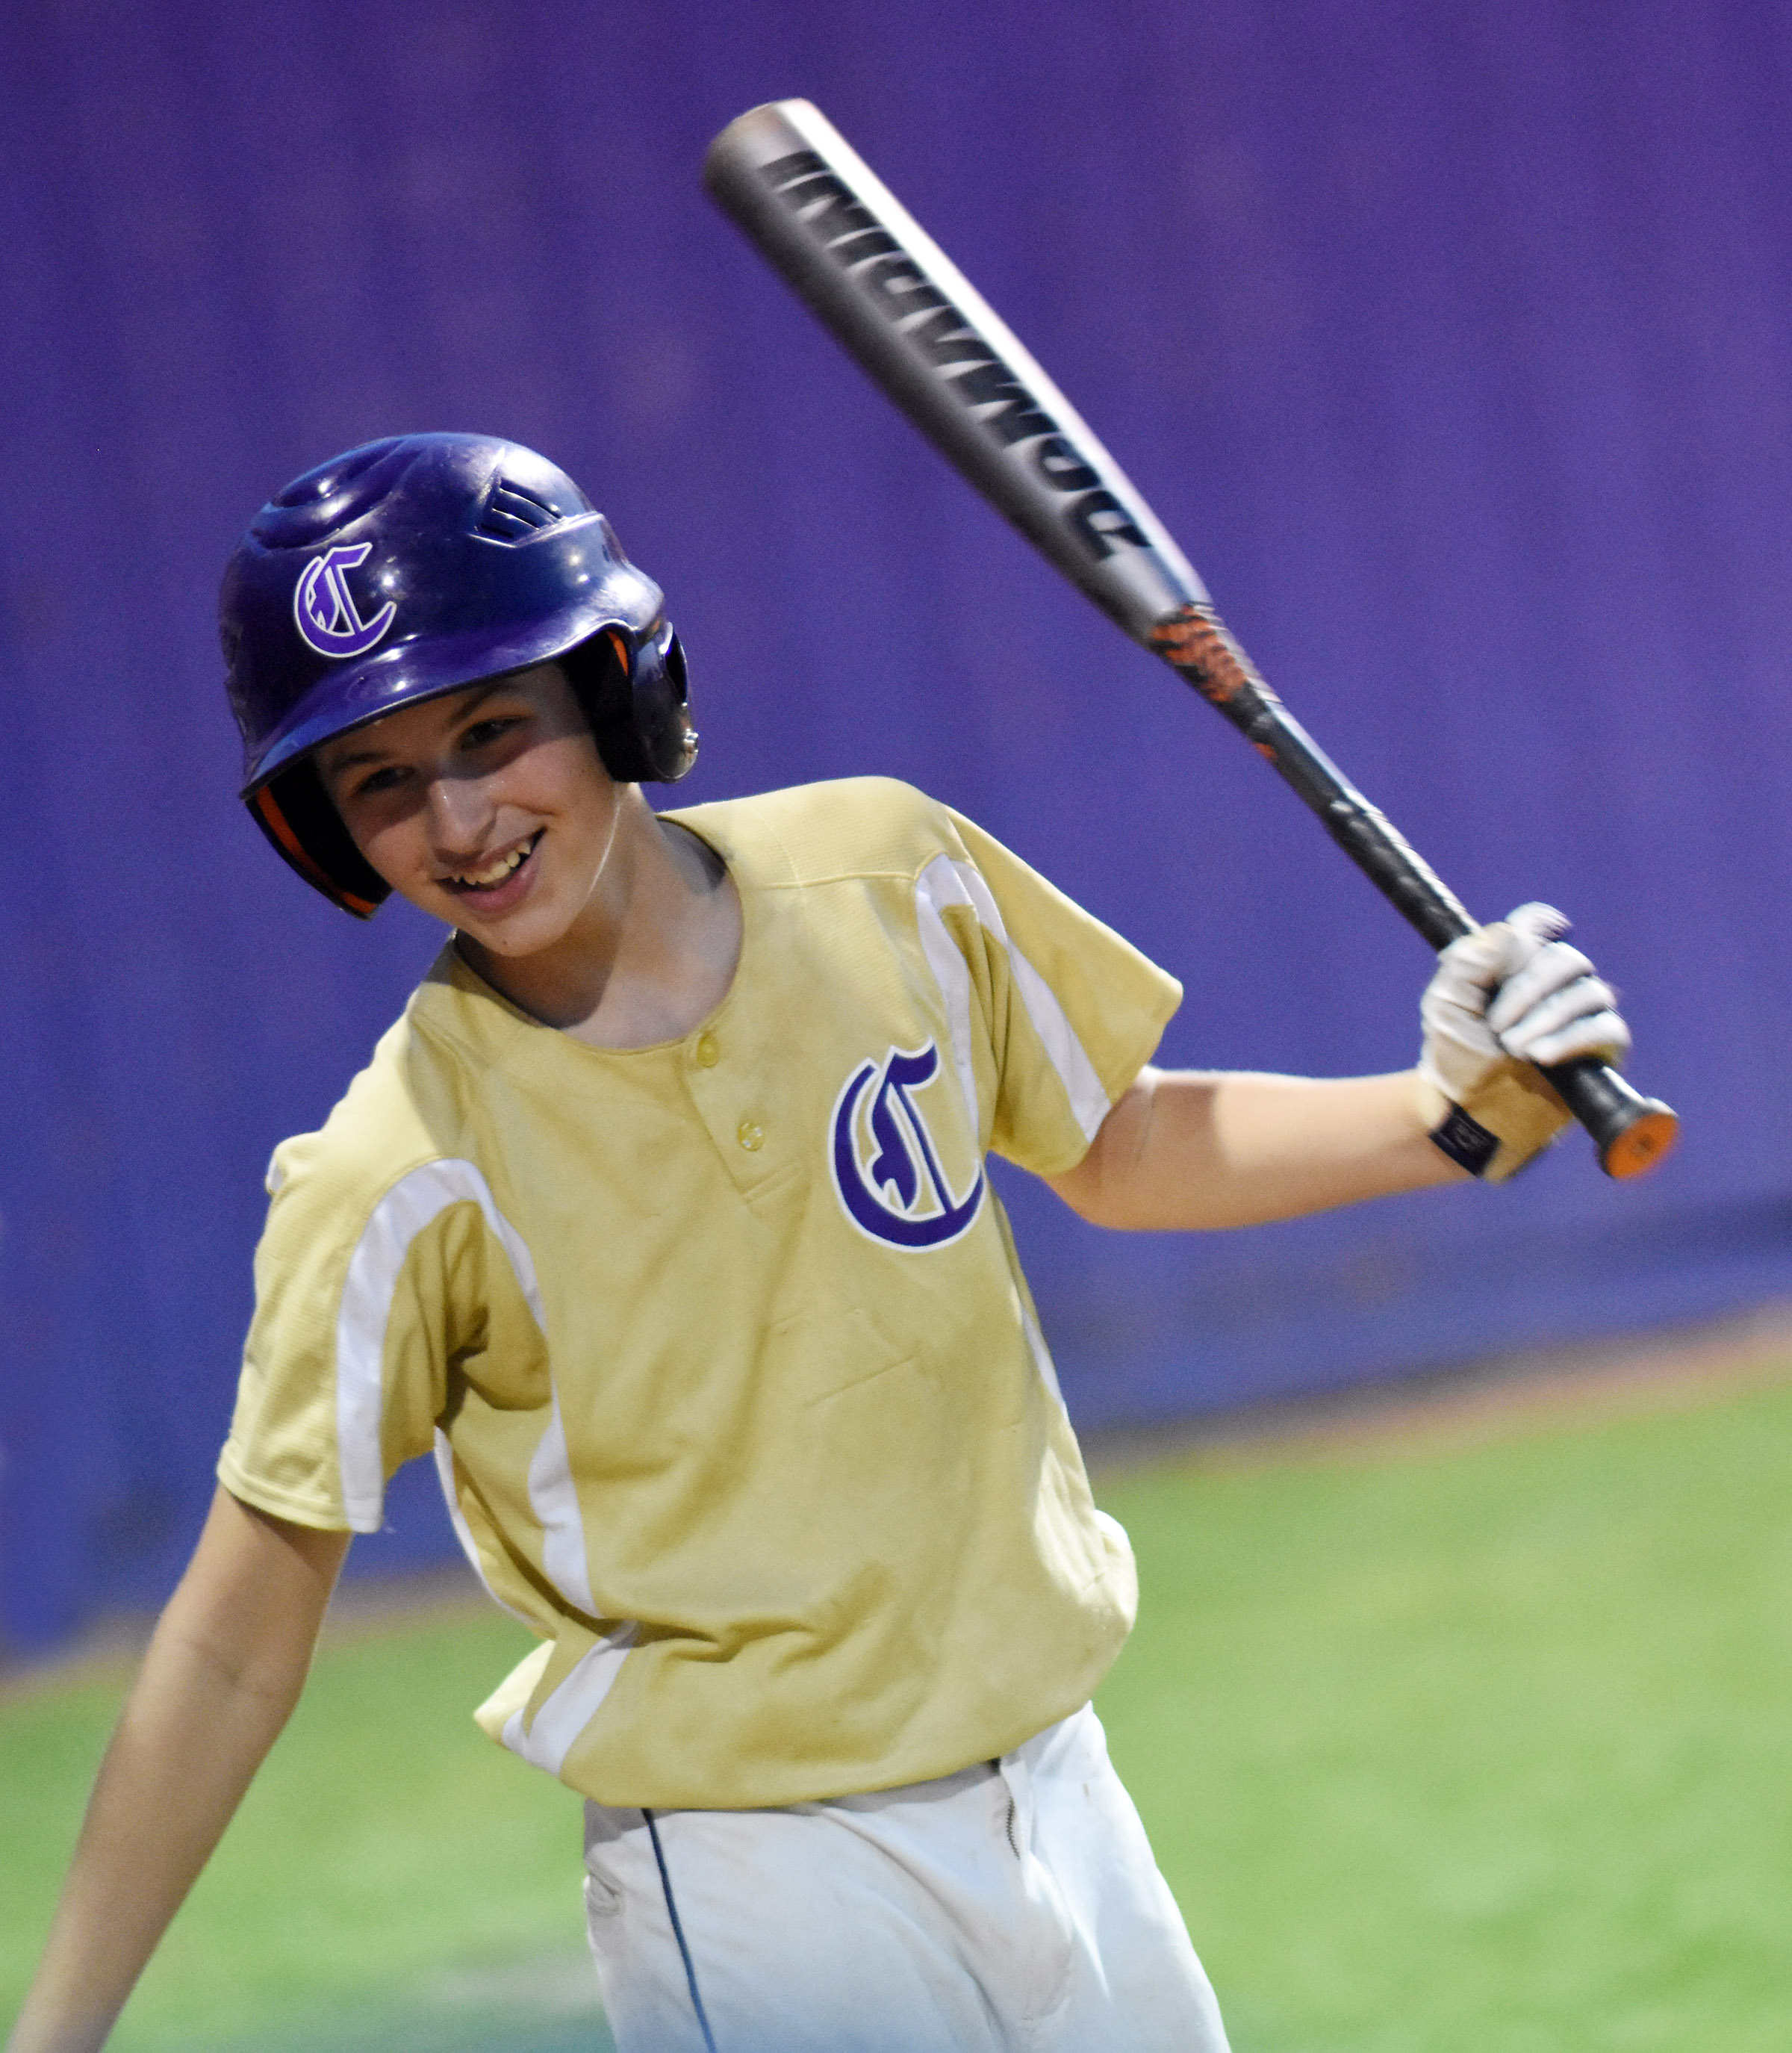 CMS sixth-grader Jaxon Sidebottom waits to bat.